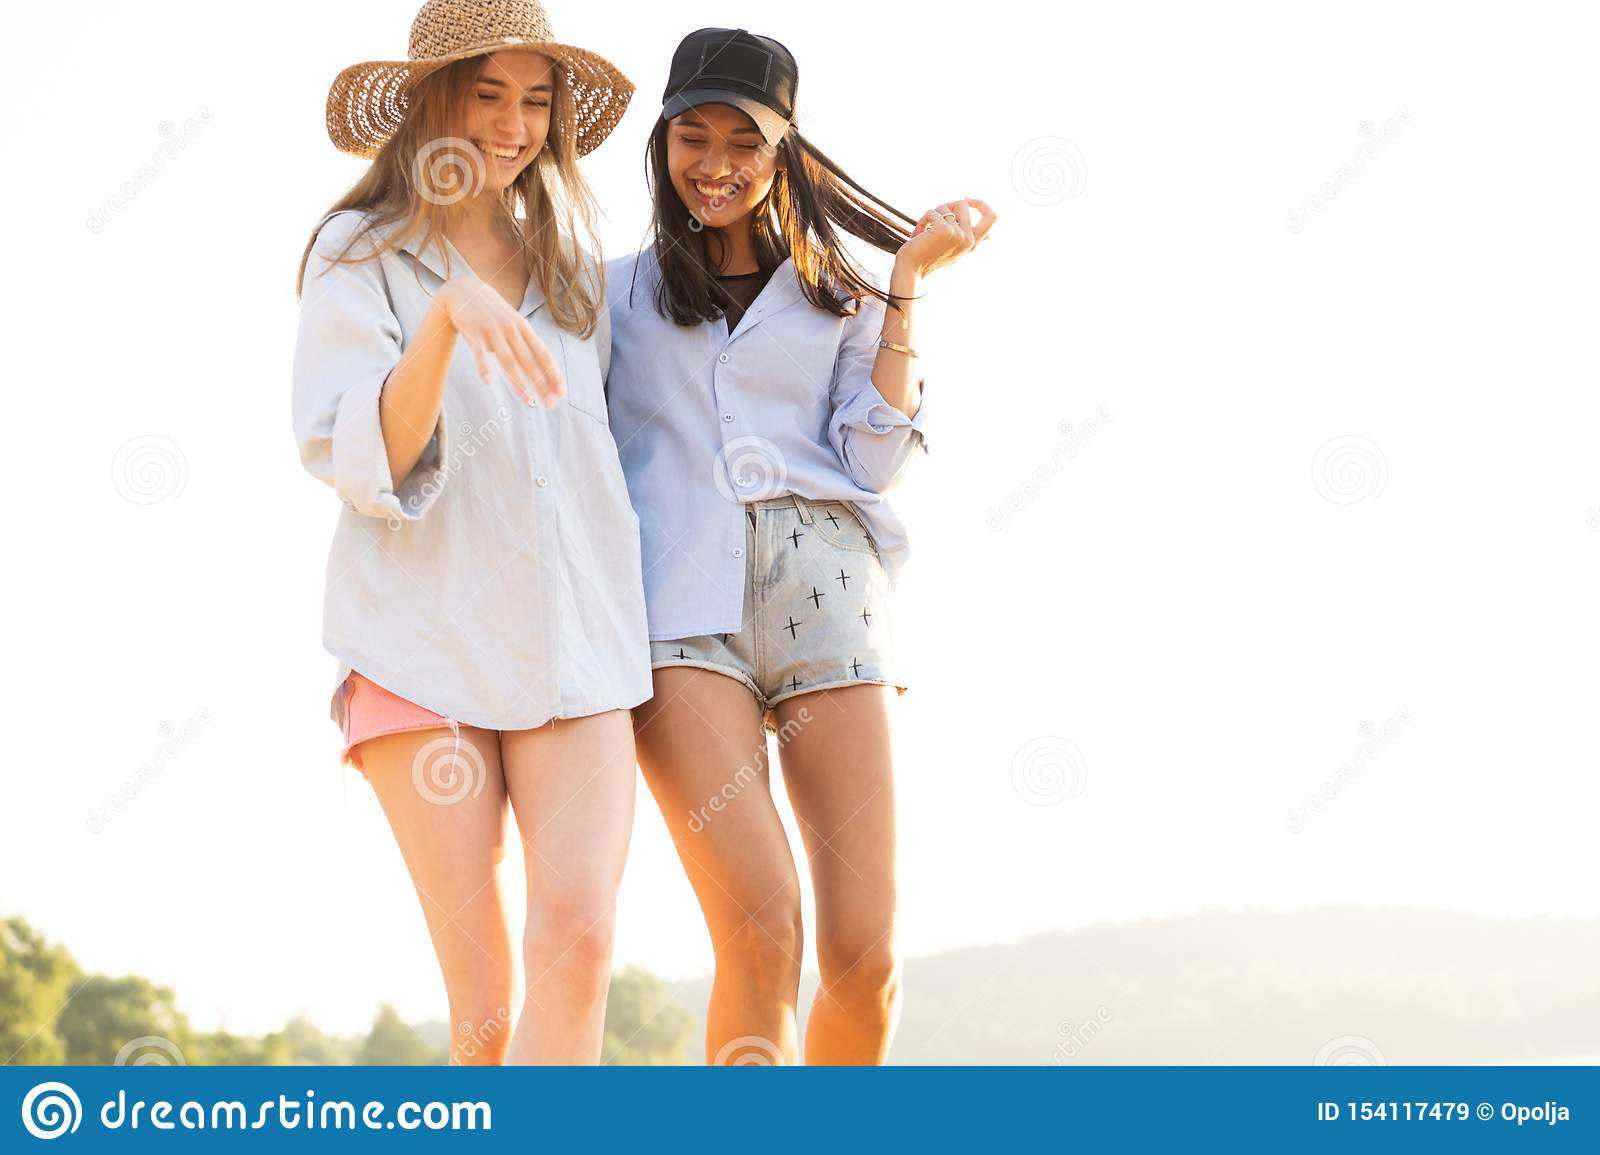 Two beautiful young women strolling on a beach. Female friends walking on the beach and laughing on a summer day.